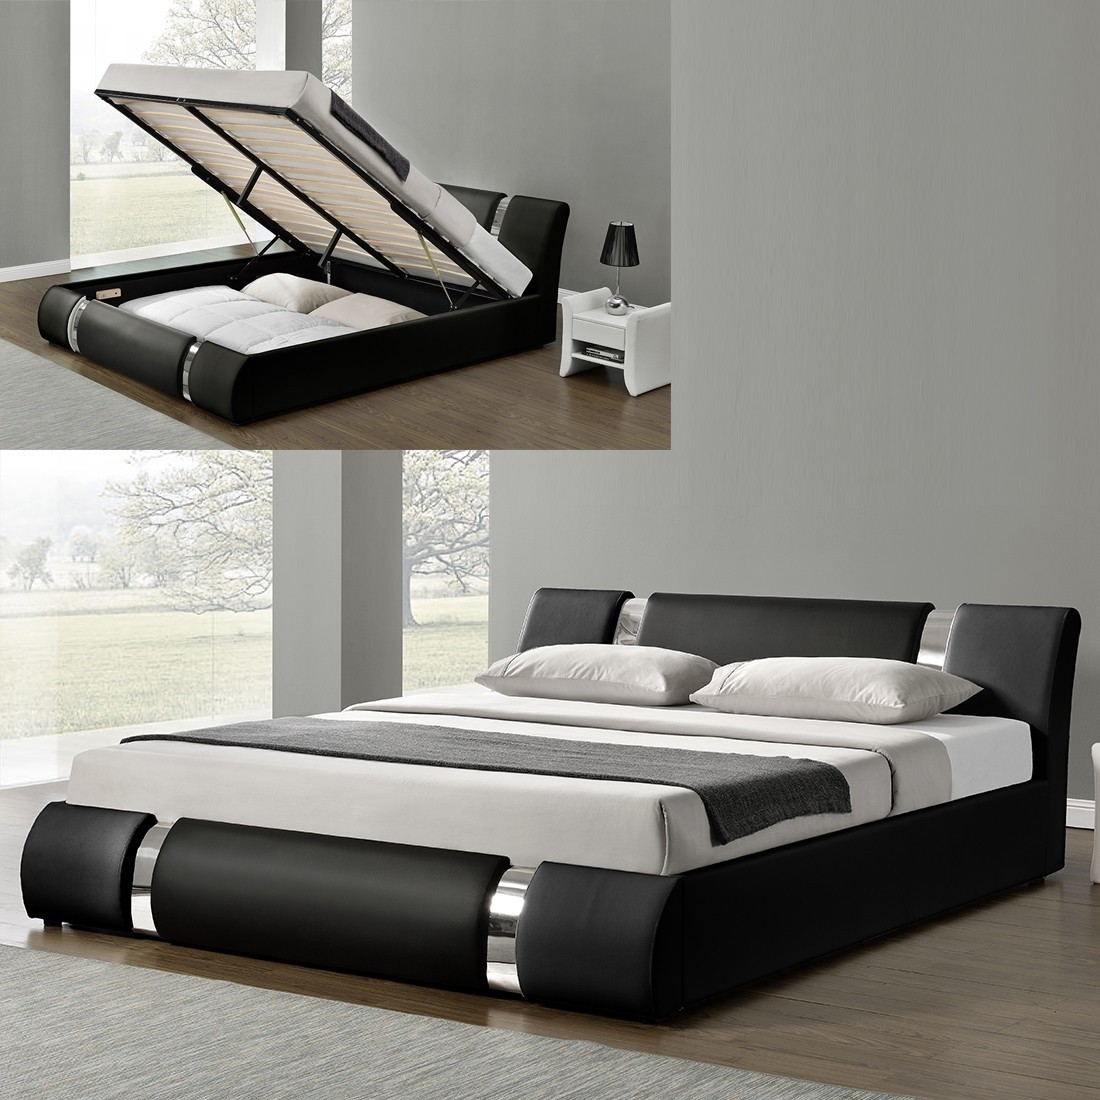 lit avec sommier de rangement relevable nova meublerdesign. Black Bedroom Furniture Sets. Home Design Ideas